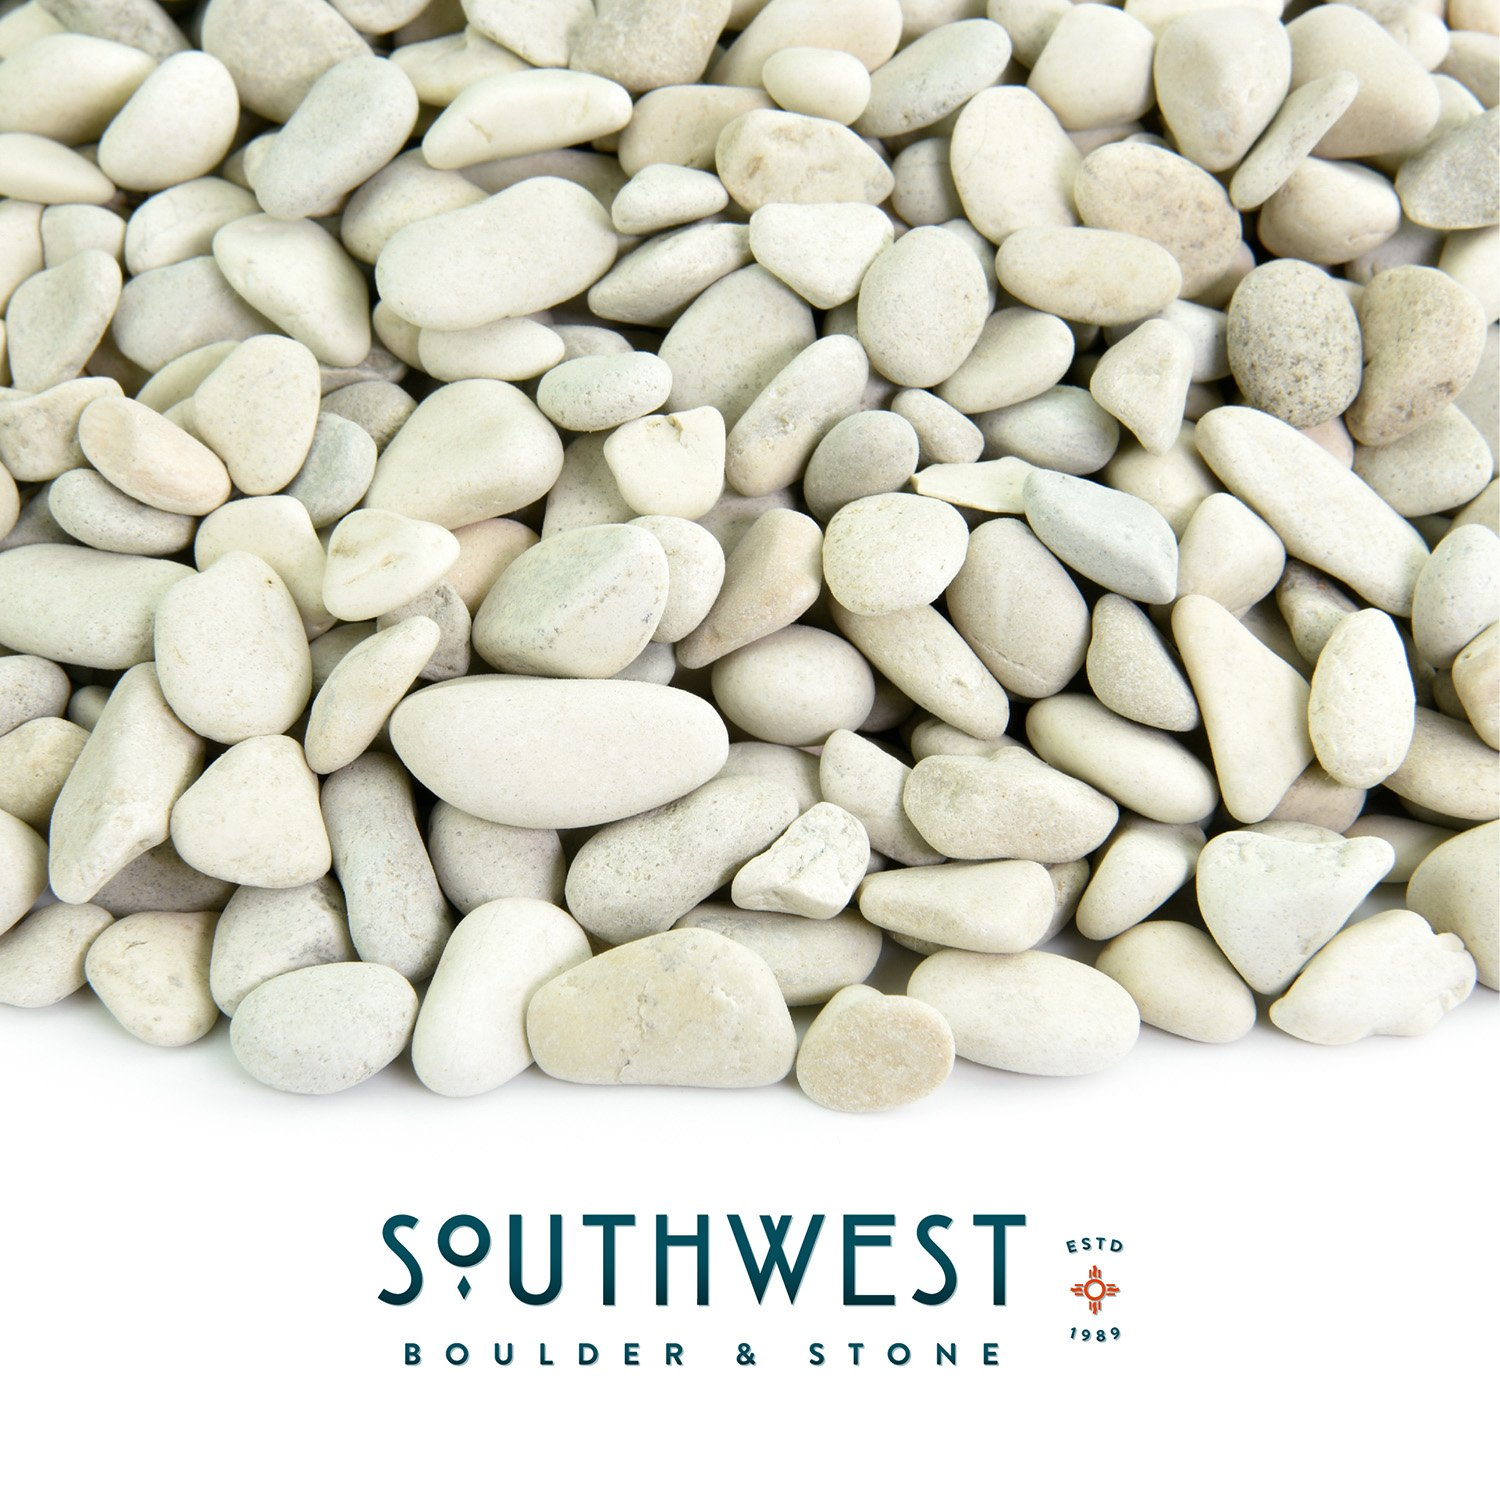 Polished Pebbles | 5 Pounds of Natural, Decorative Stones | Hand-Picked, Premium Pebbles for Aquariums, Terrariums, Fish Tanks and Gardens | Polynesian White, 3/8 Inch - 5/8 Inch